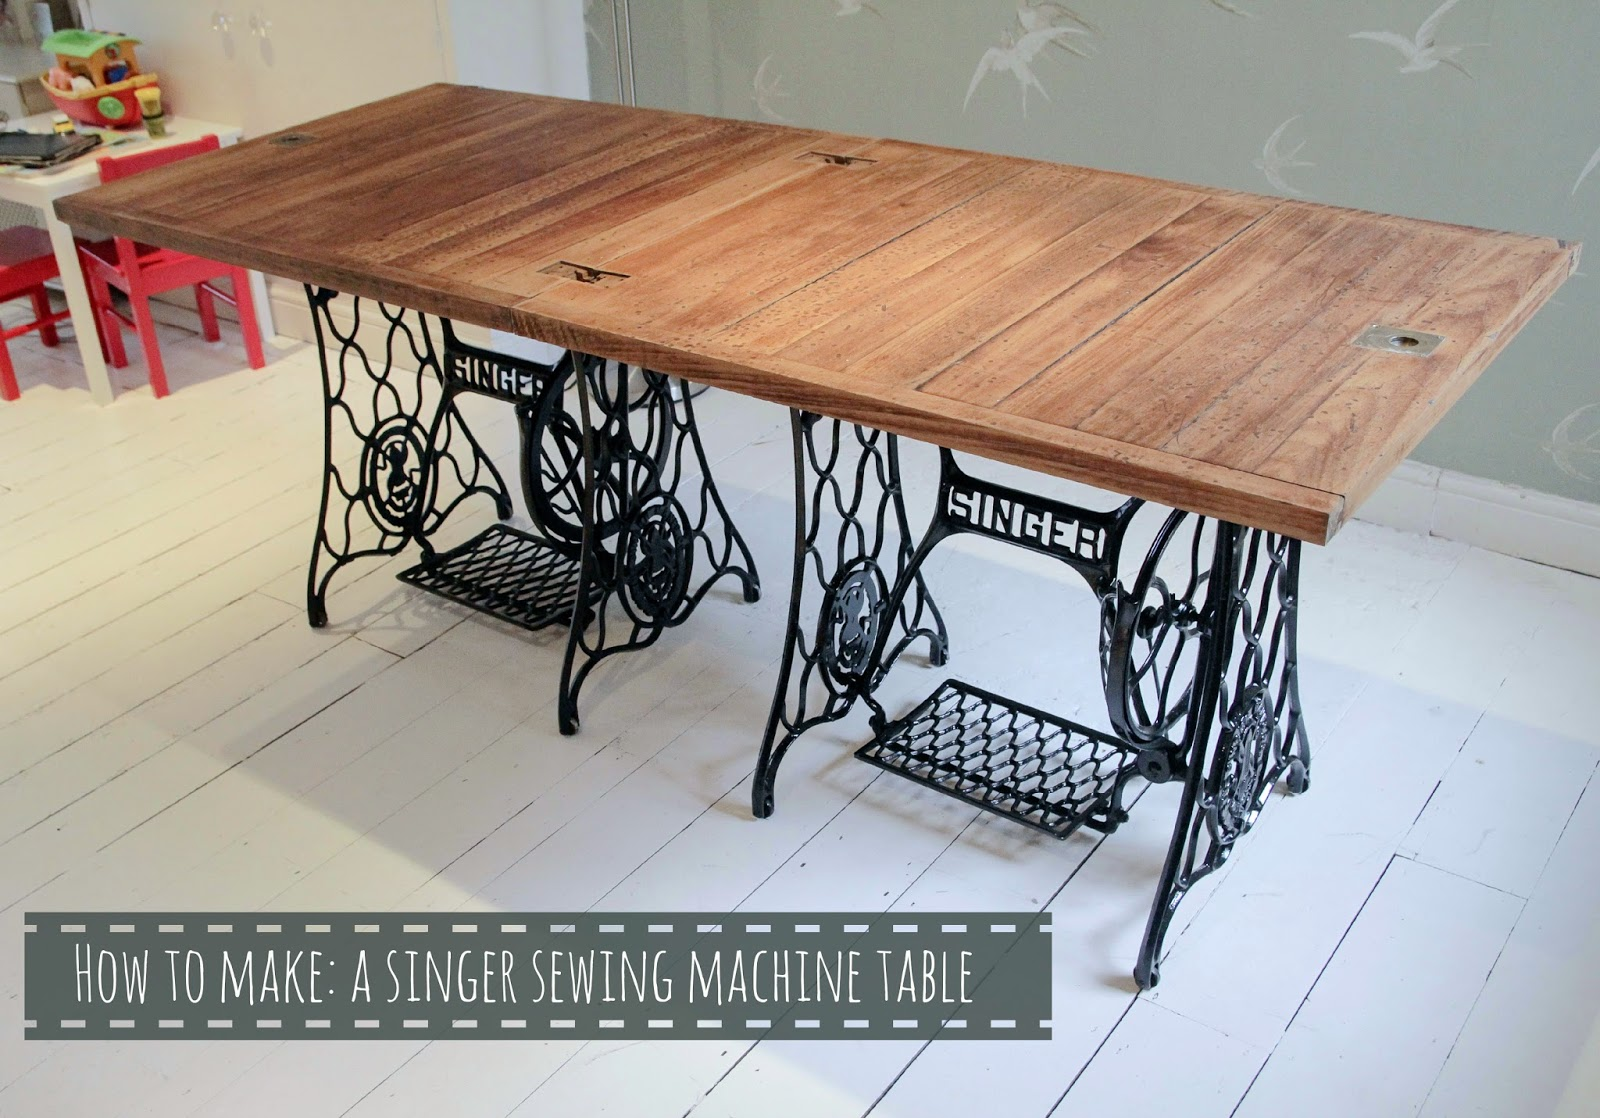 How to make a singer sewing machine dining table